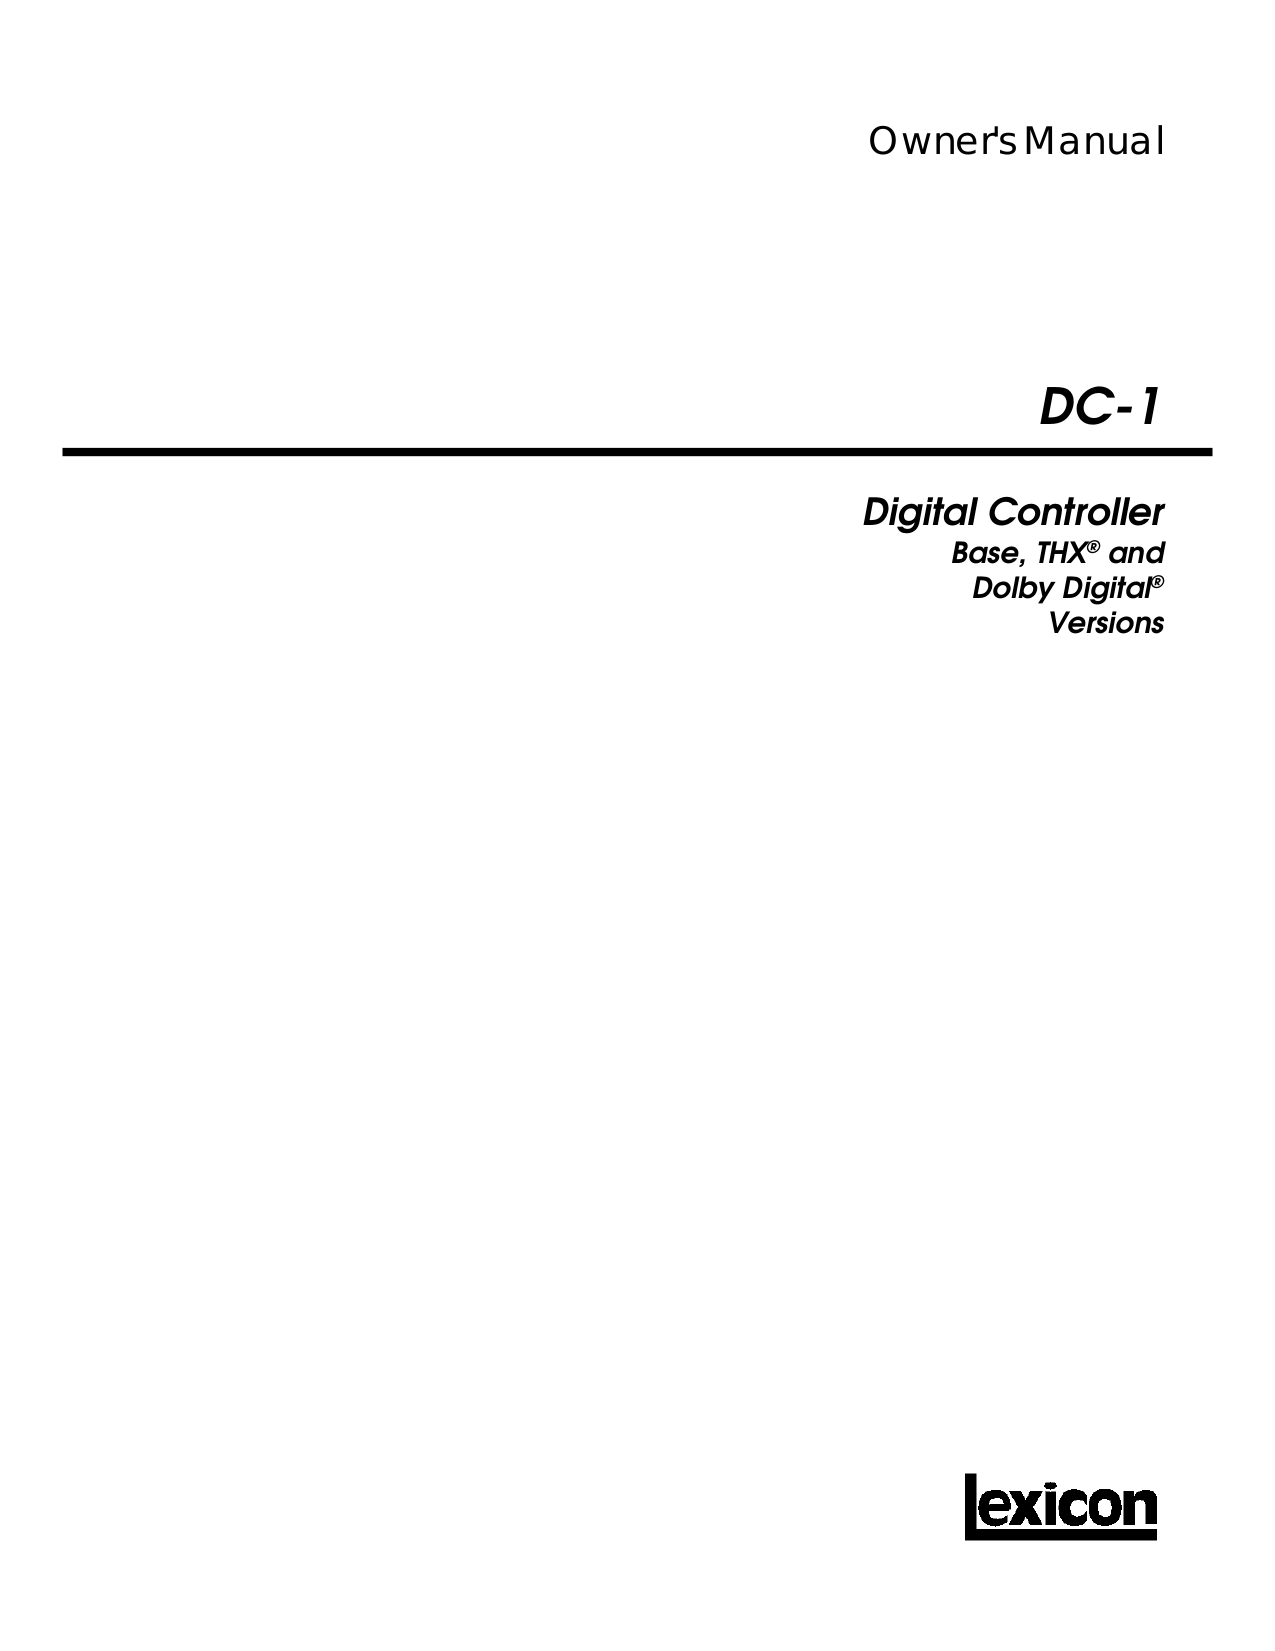 pdf for Lexicon Other LDD-1 RF Demodulator manual